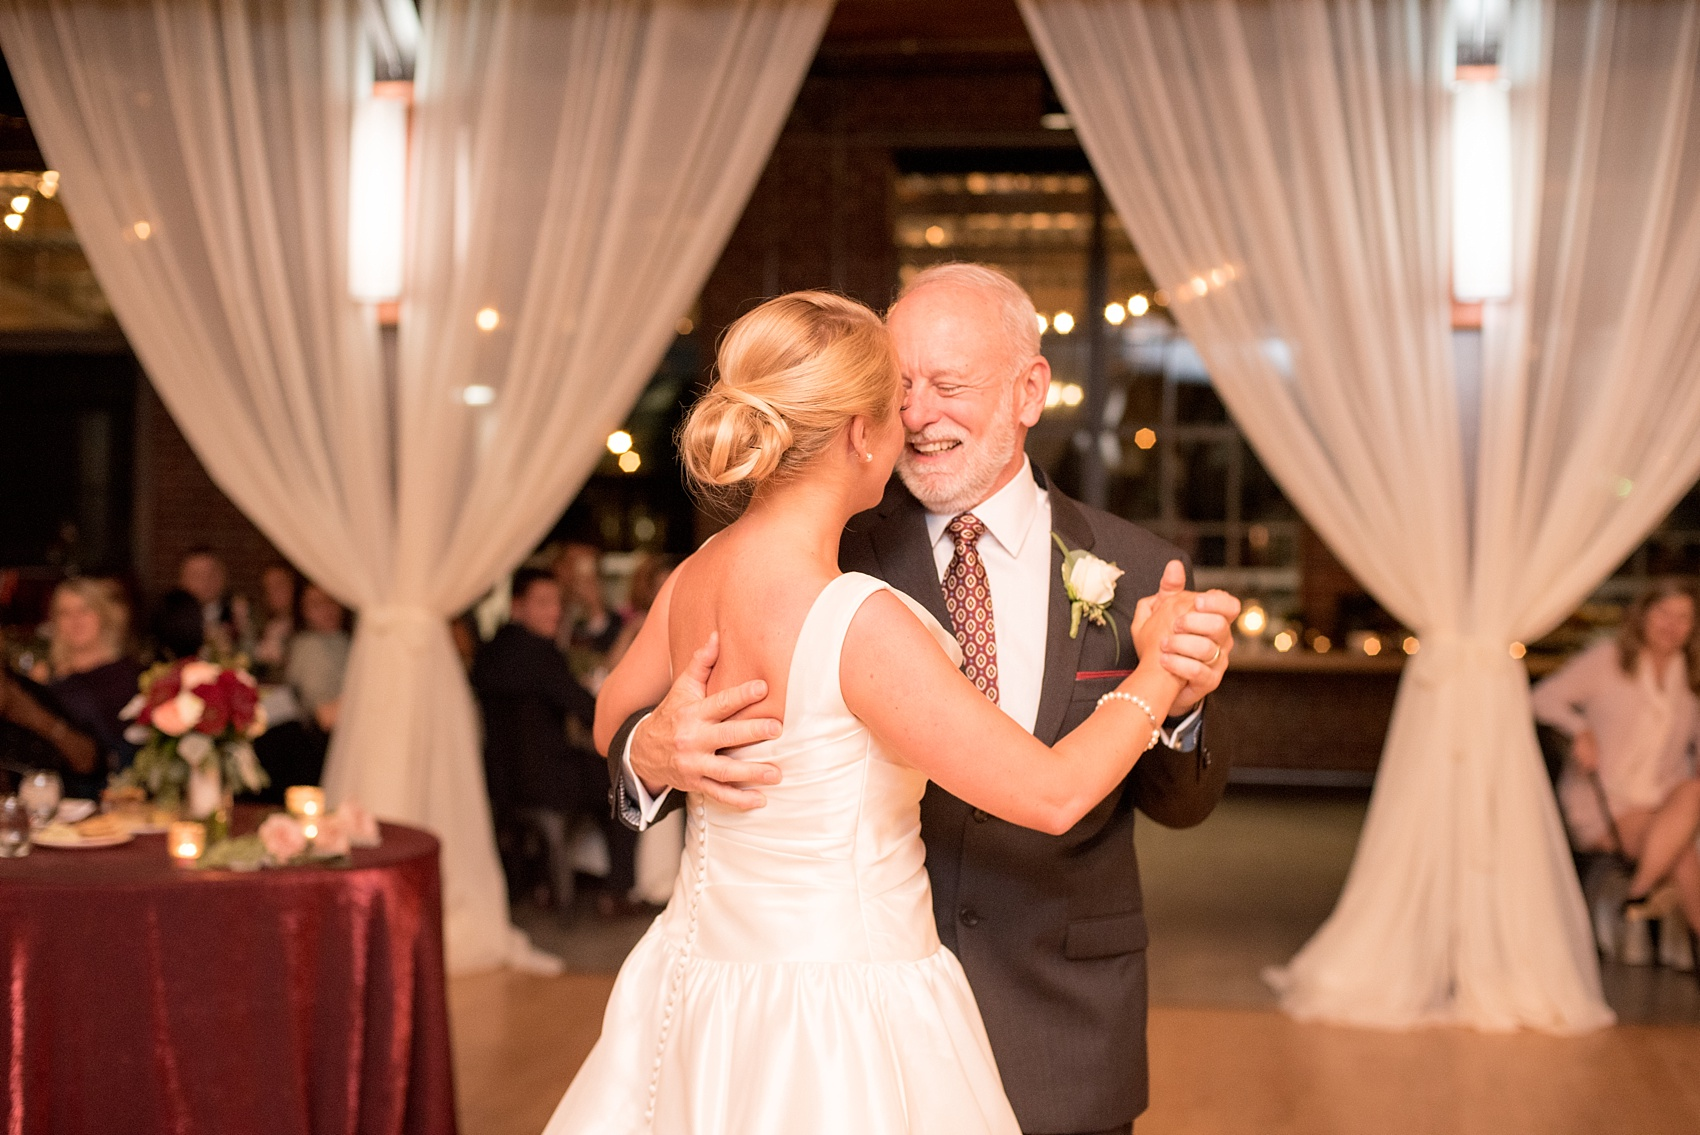 Mikkel Paige Photography photo of a wedding at The Rickhouse, NC. A picture of the bride dancing with her father.